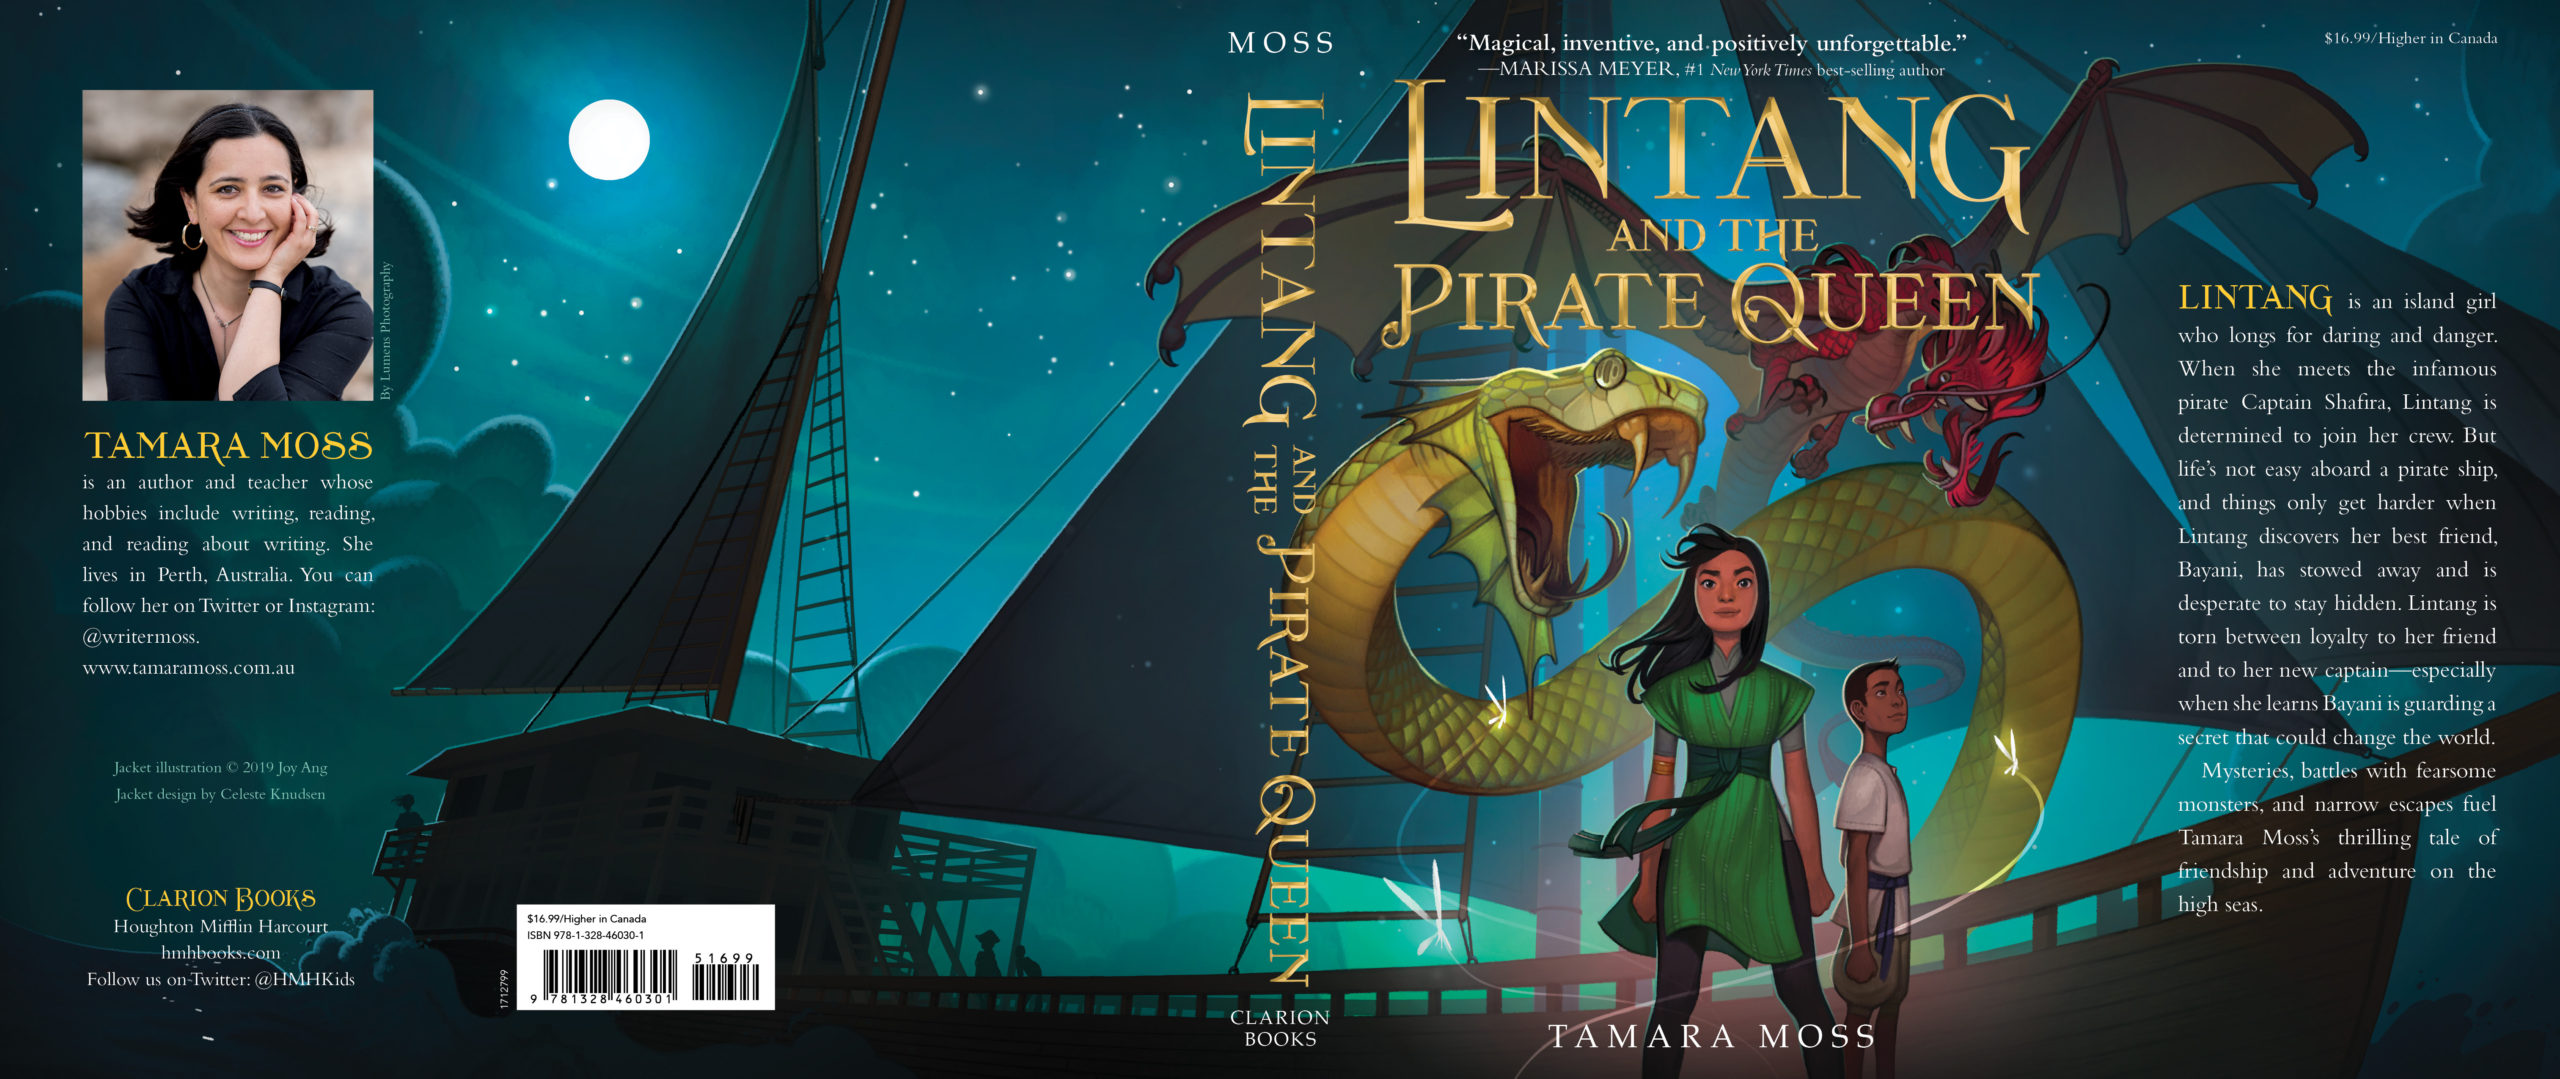 Lintang and Pirate Queen Jacket Design